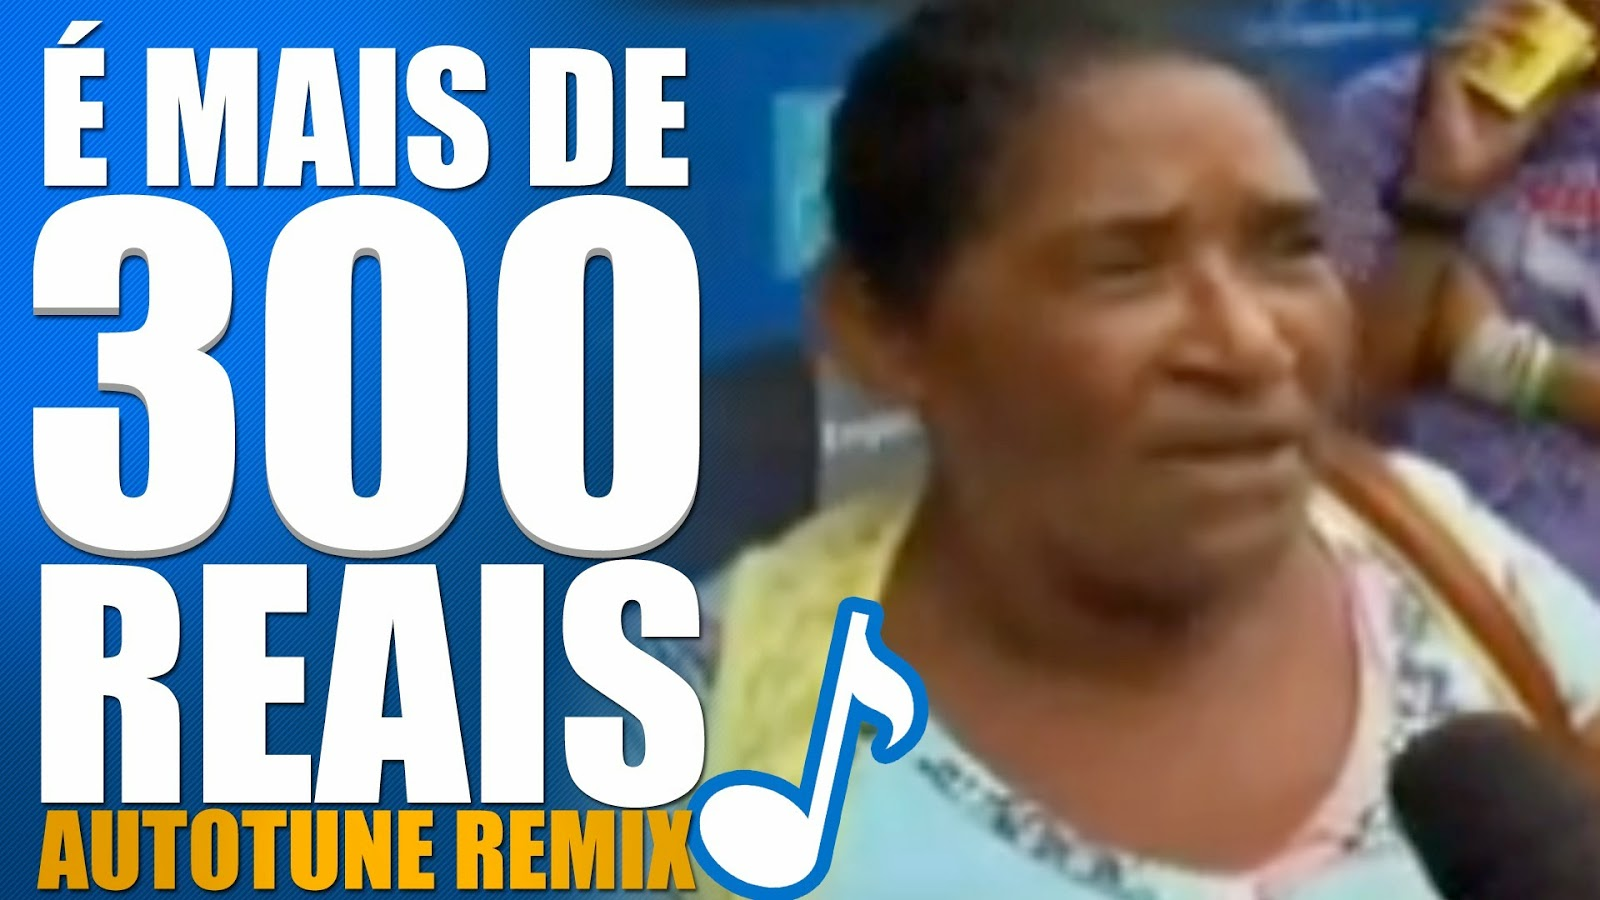 video meme é mais de 300 reais